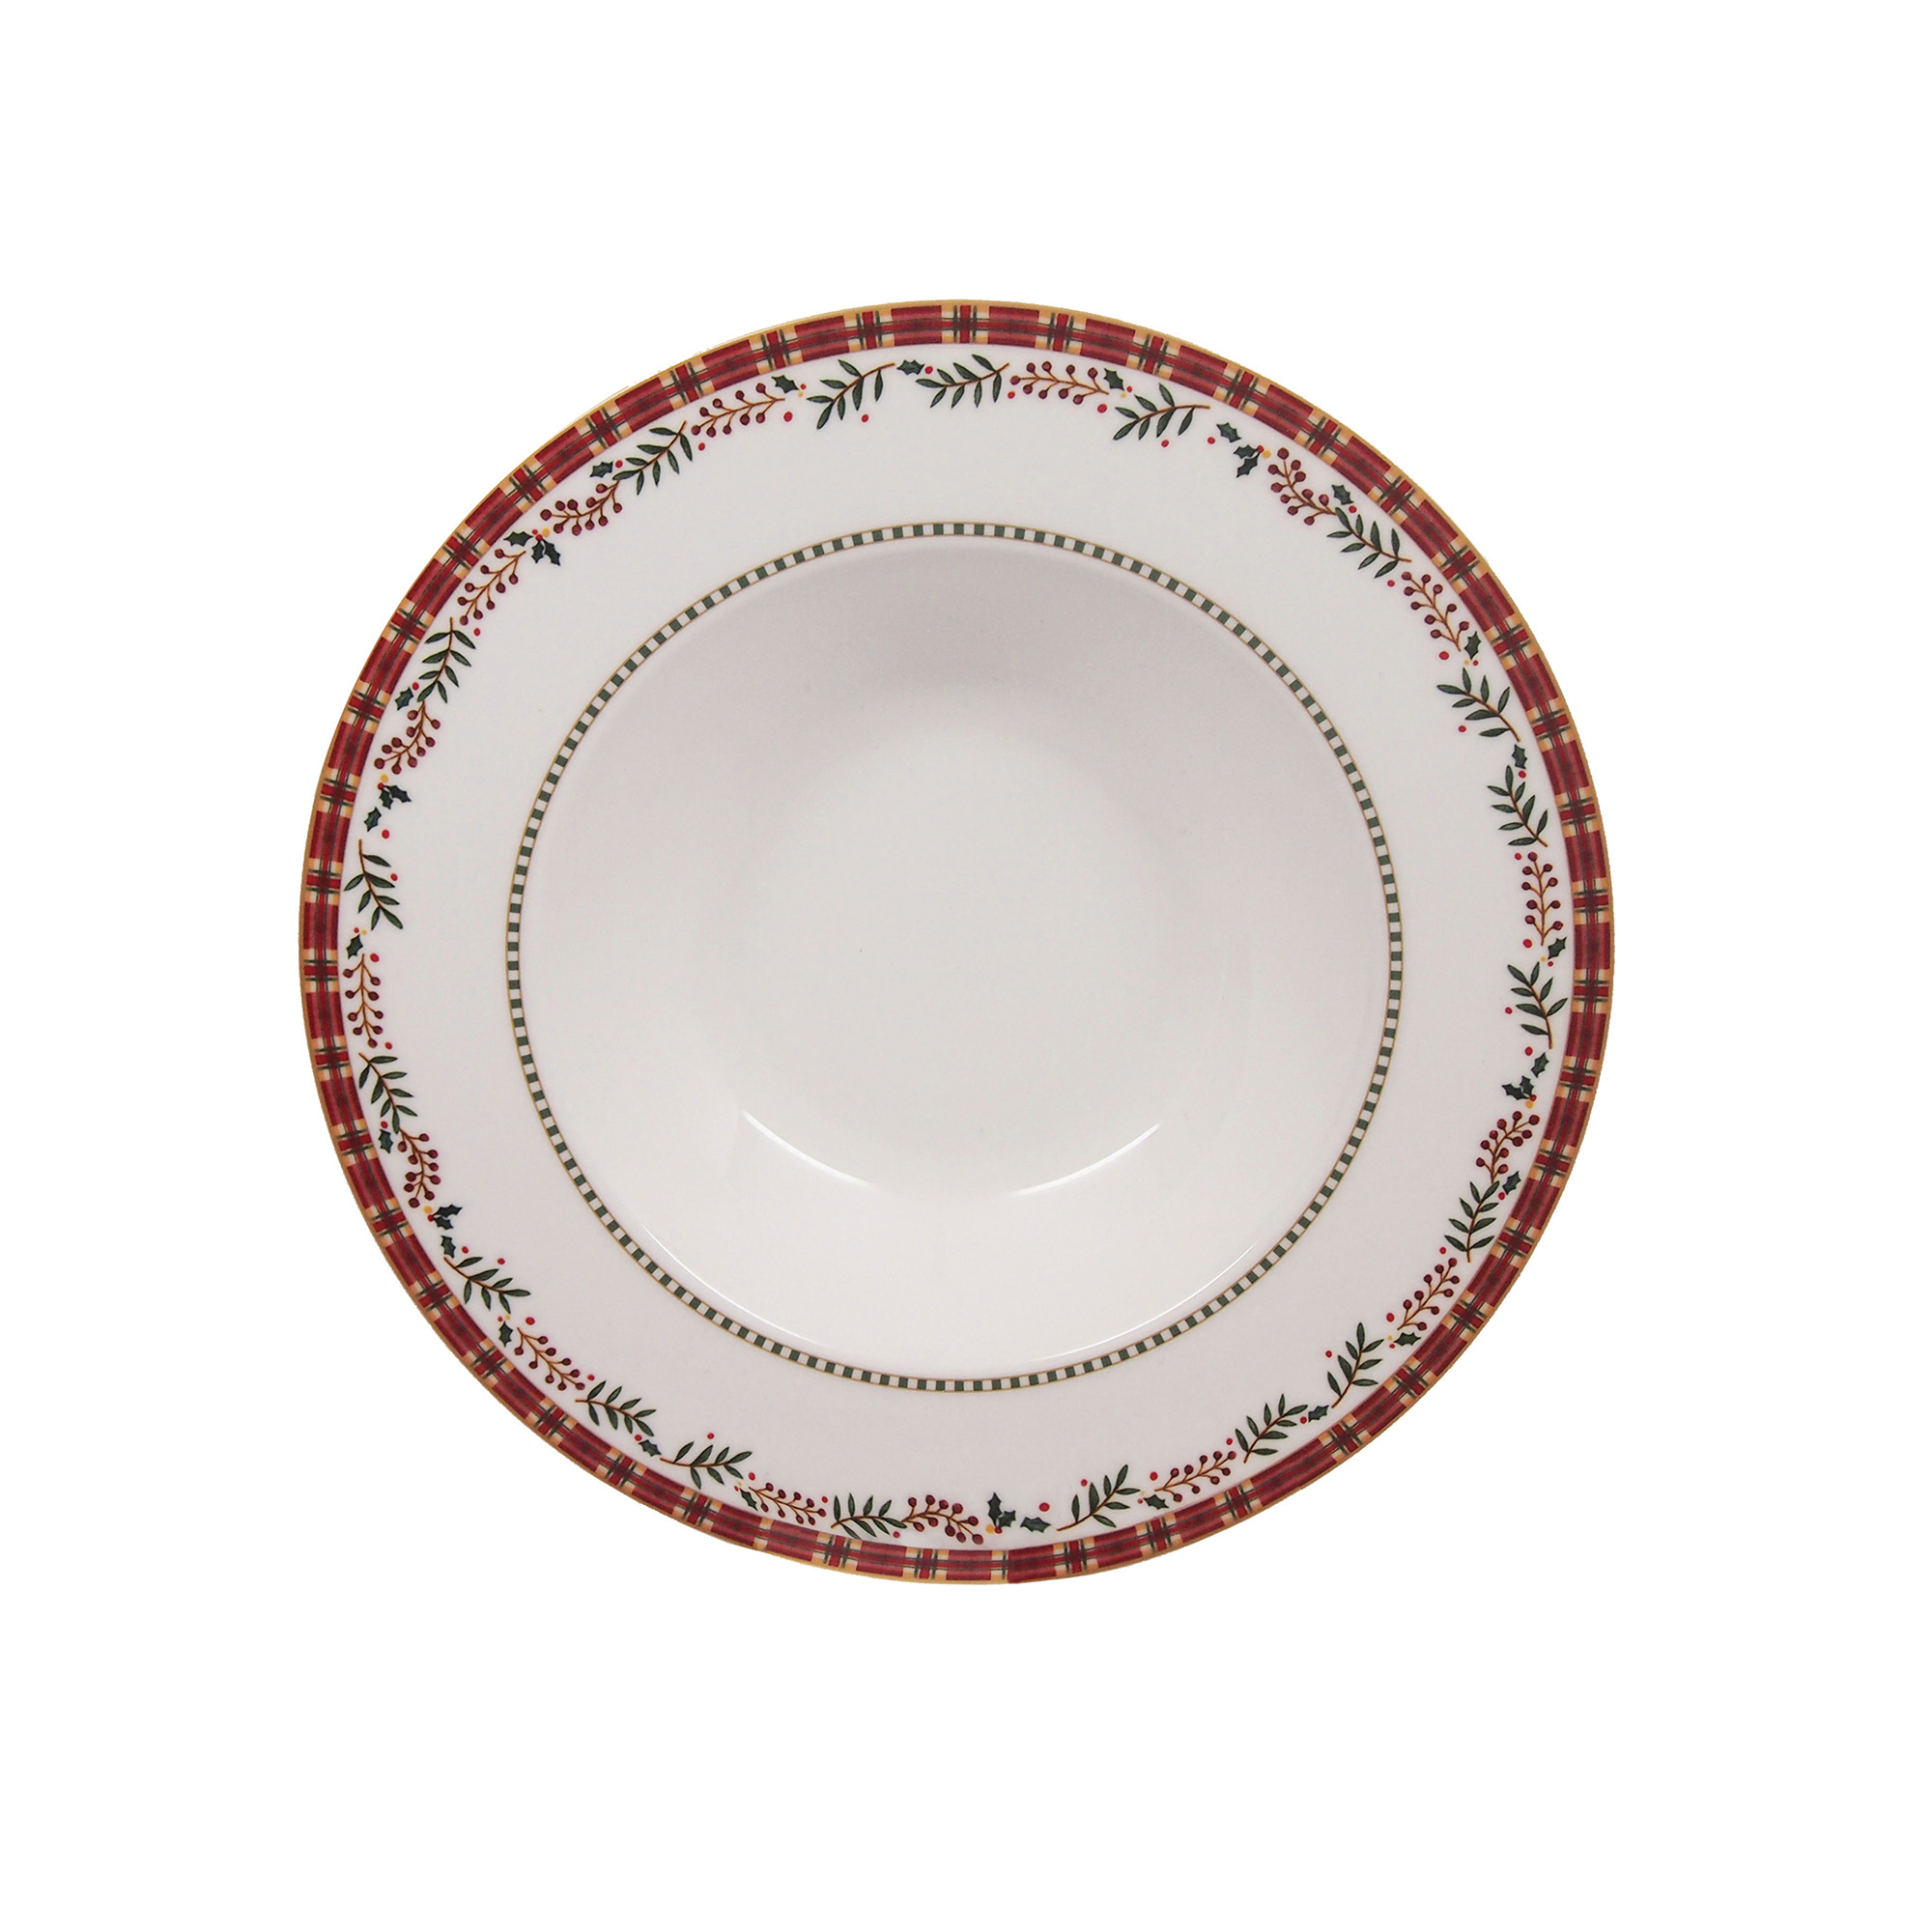 Prouna Nutcracker Rim Soup Bowl